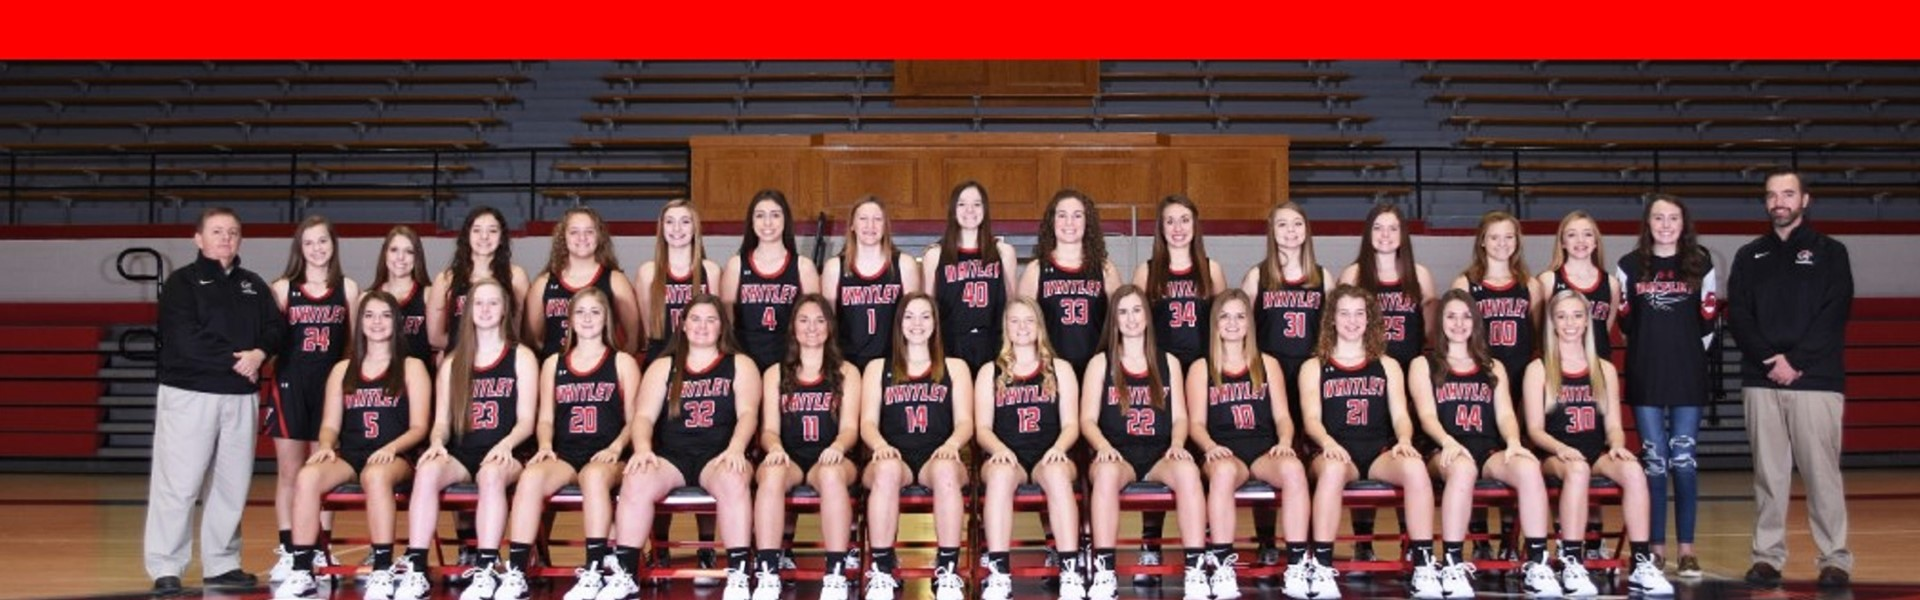 WCHS Girls Basketball (Courtesy of Scott Powell Photography)